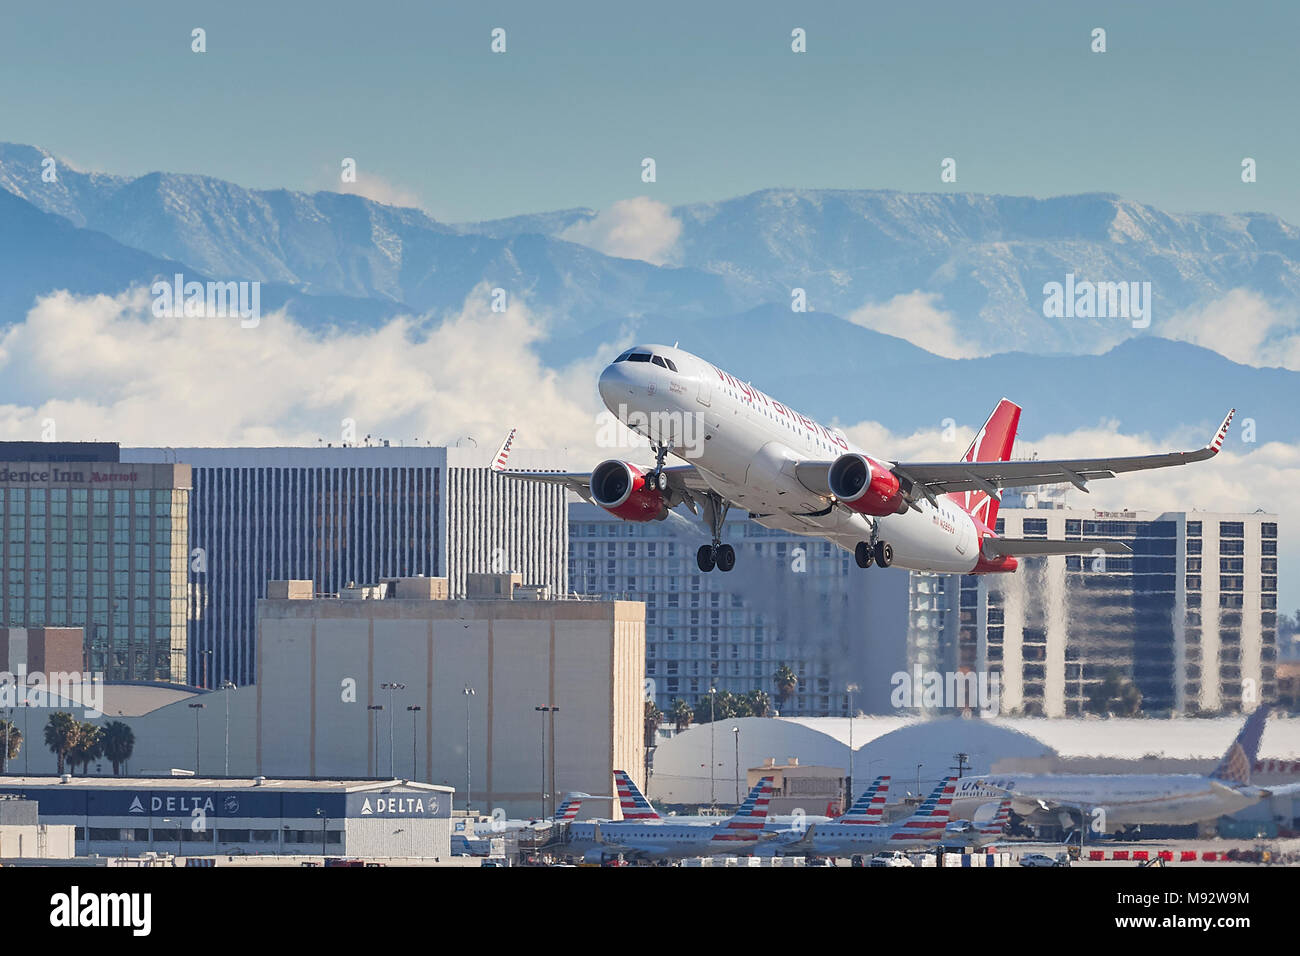 Virgin America Airbus A320 Jet Plane, Taking Off From Los Angeles International Airport, LAX, The Snow Covered San Gabriel Mountains Behind. USA. - Stock Image